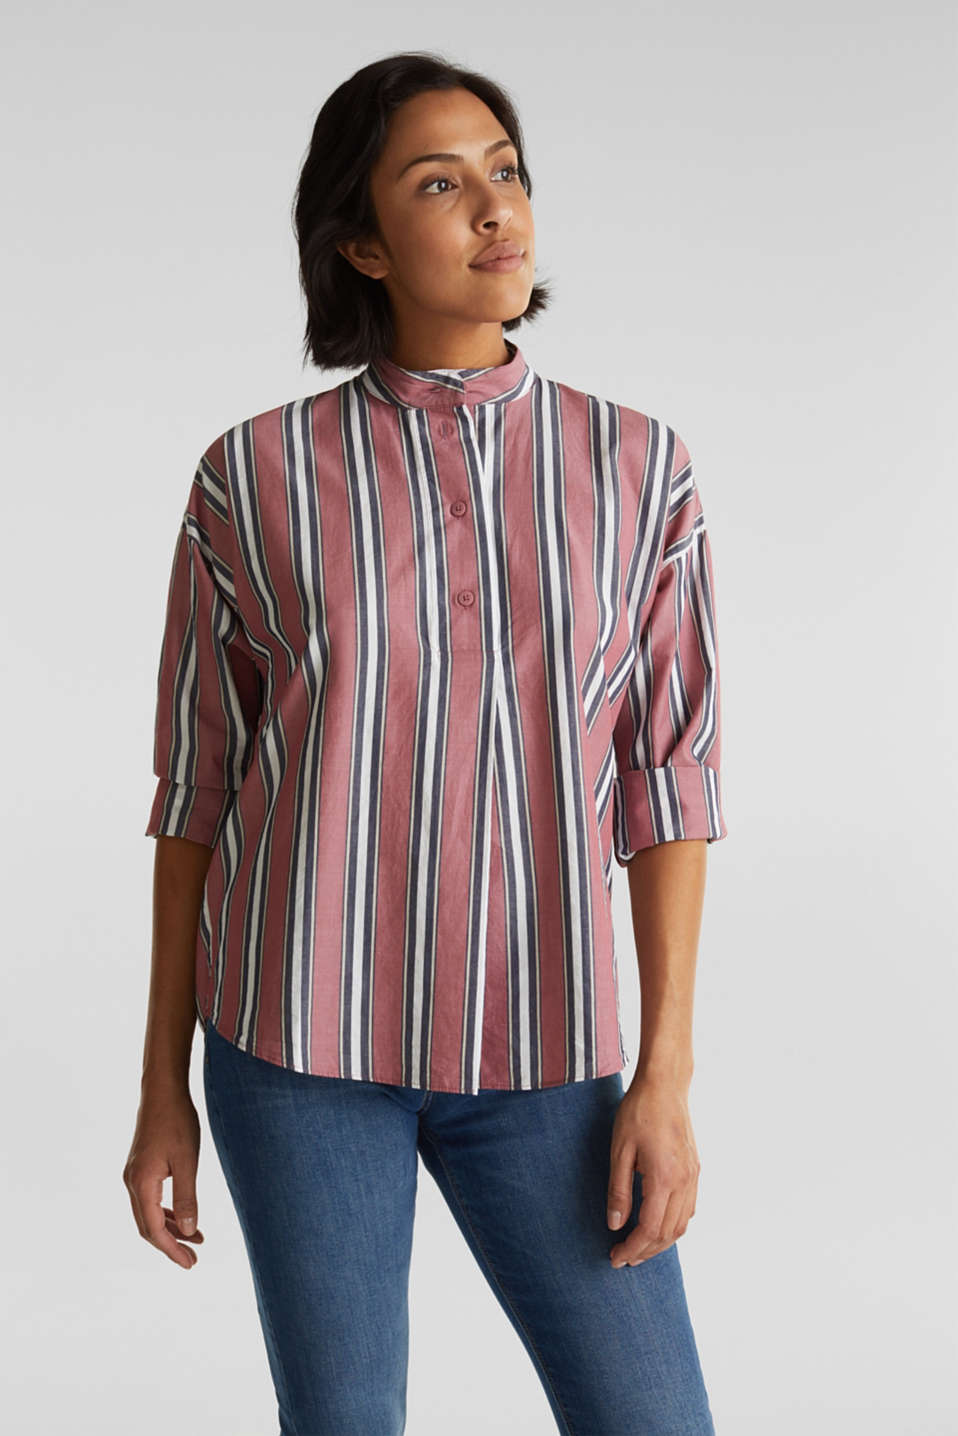 edc - Slip-on blouse with a stand-up collar, 100% cotton